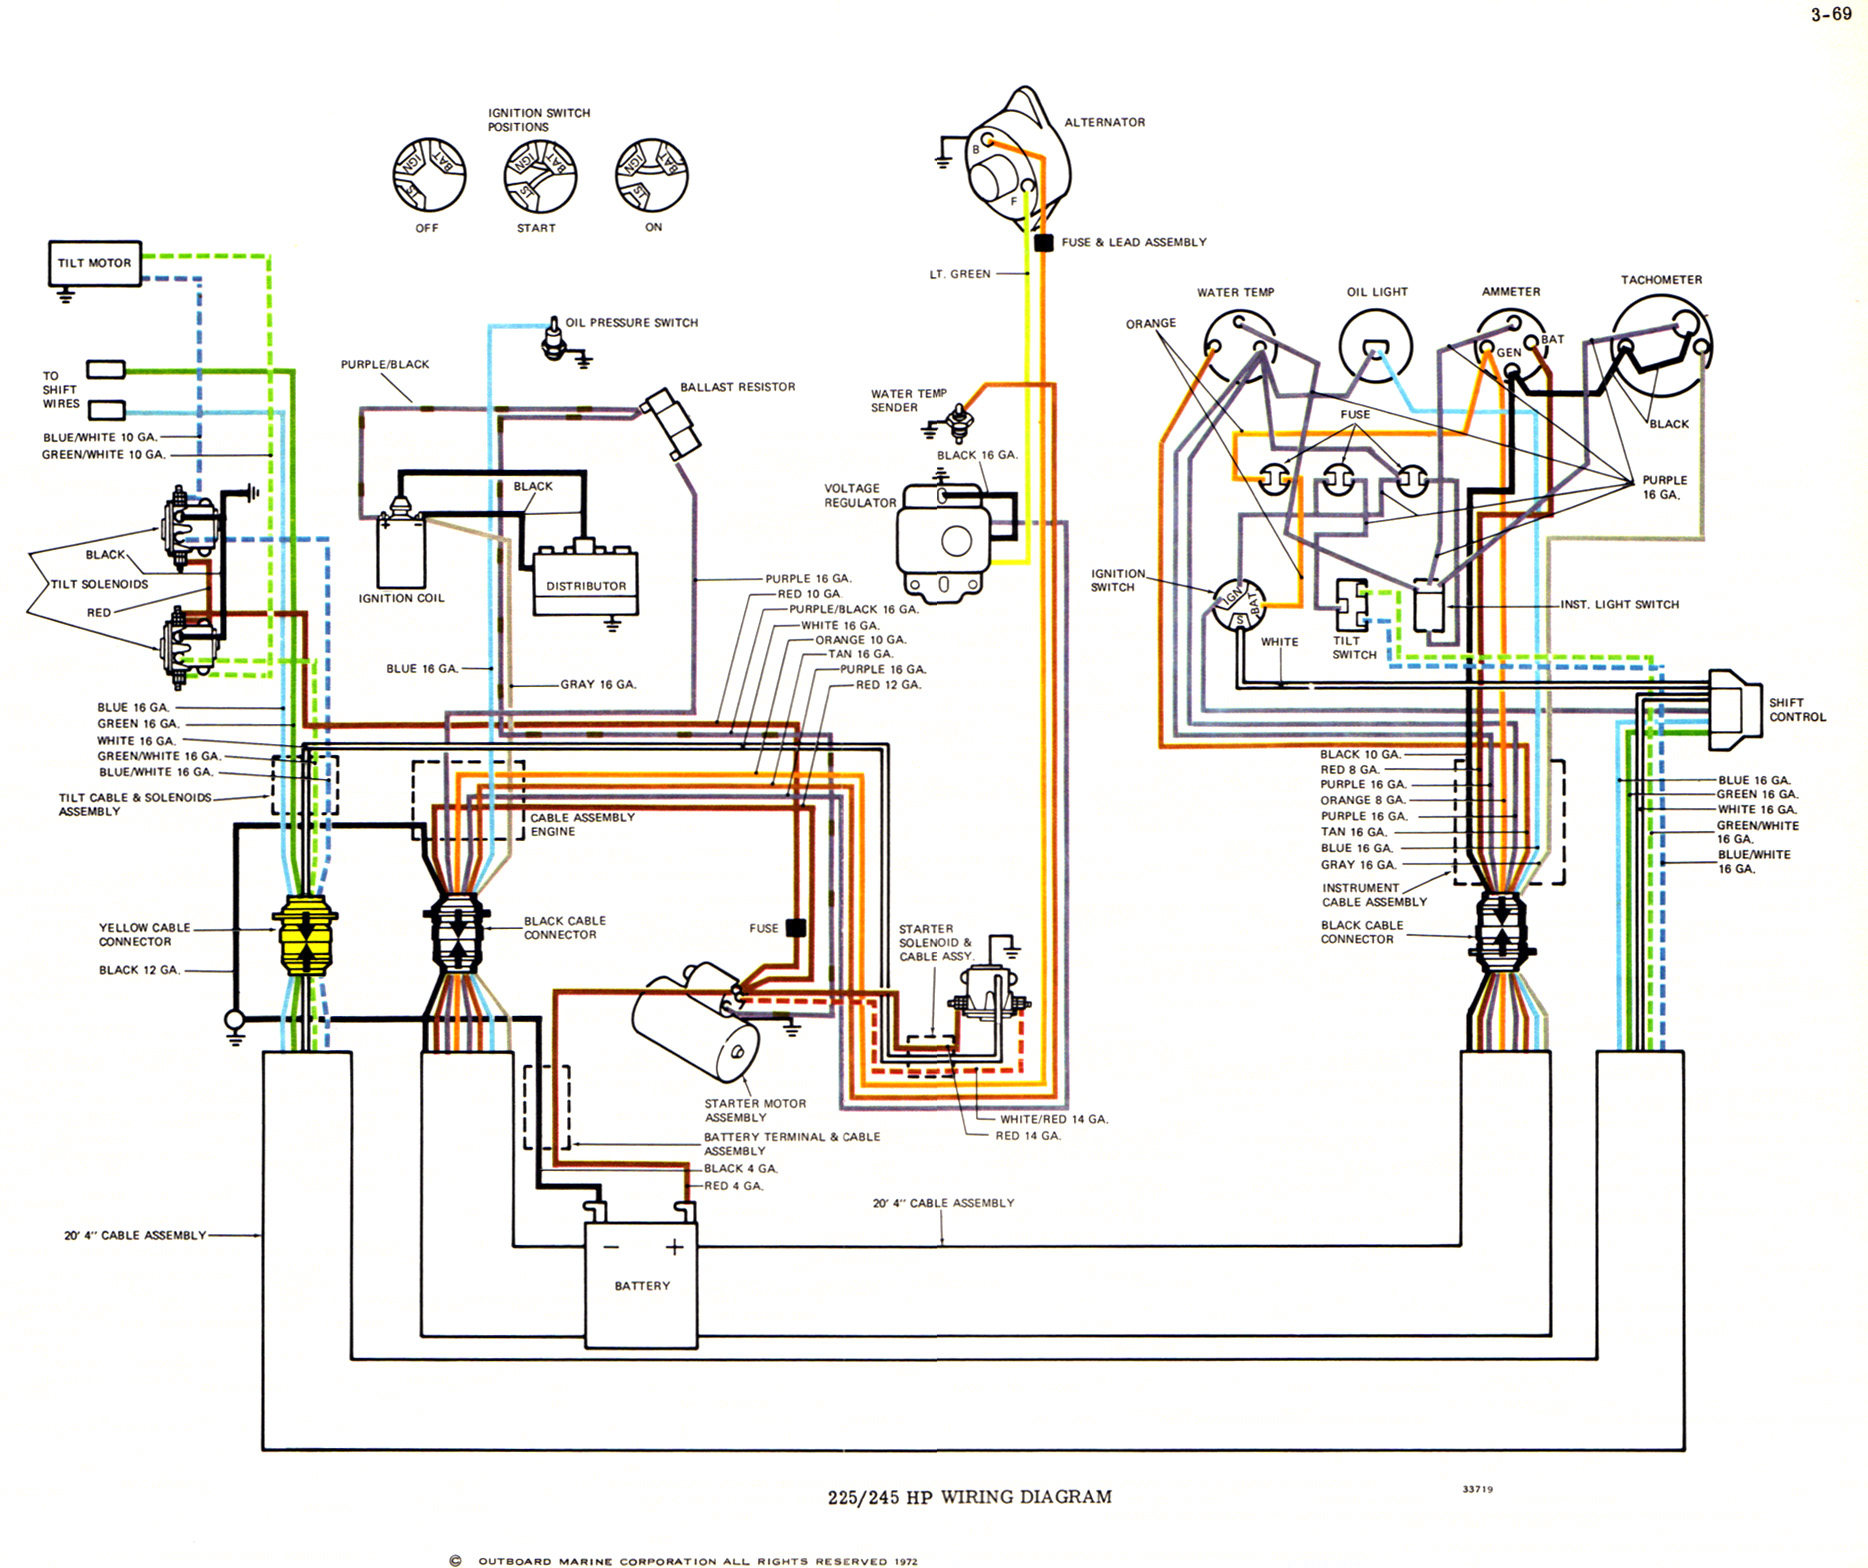 73_OMC_V8_all_big omc wiring diagram basic boat wiring schematic \u2022 wiring diagrams mercruiser wiring schematic at bayanpartner.co